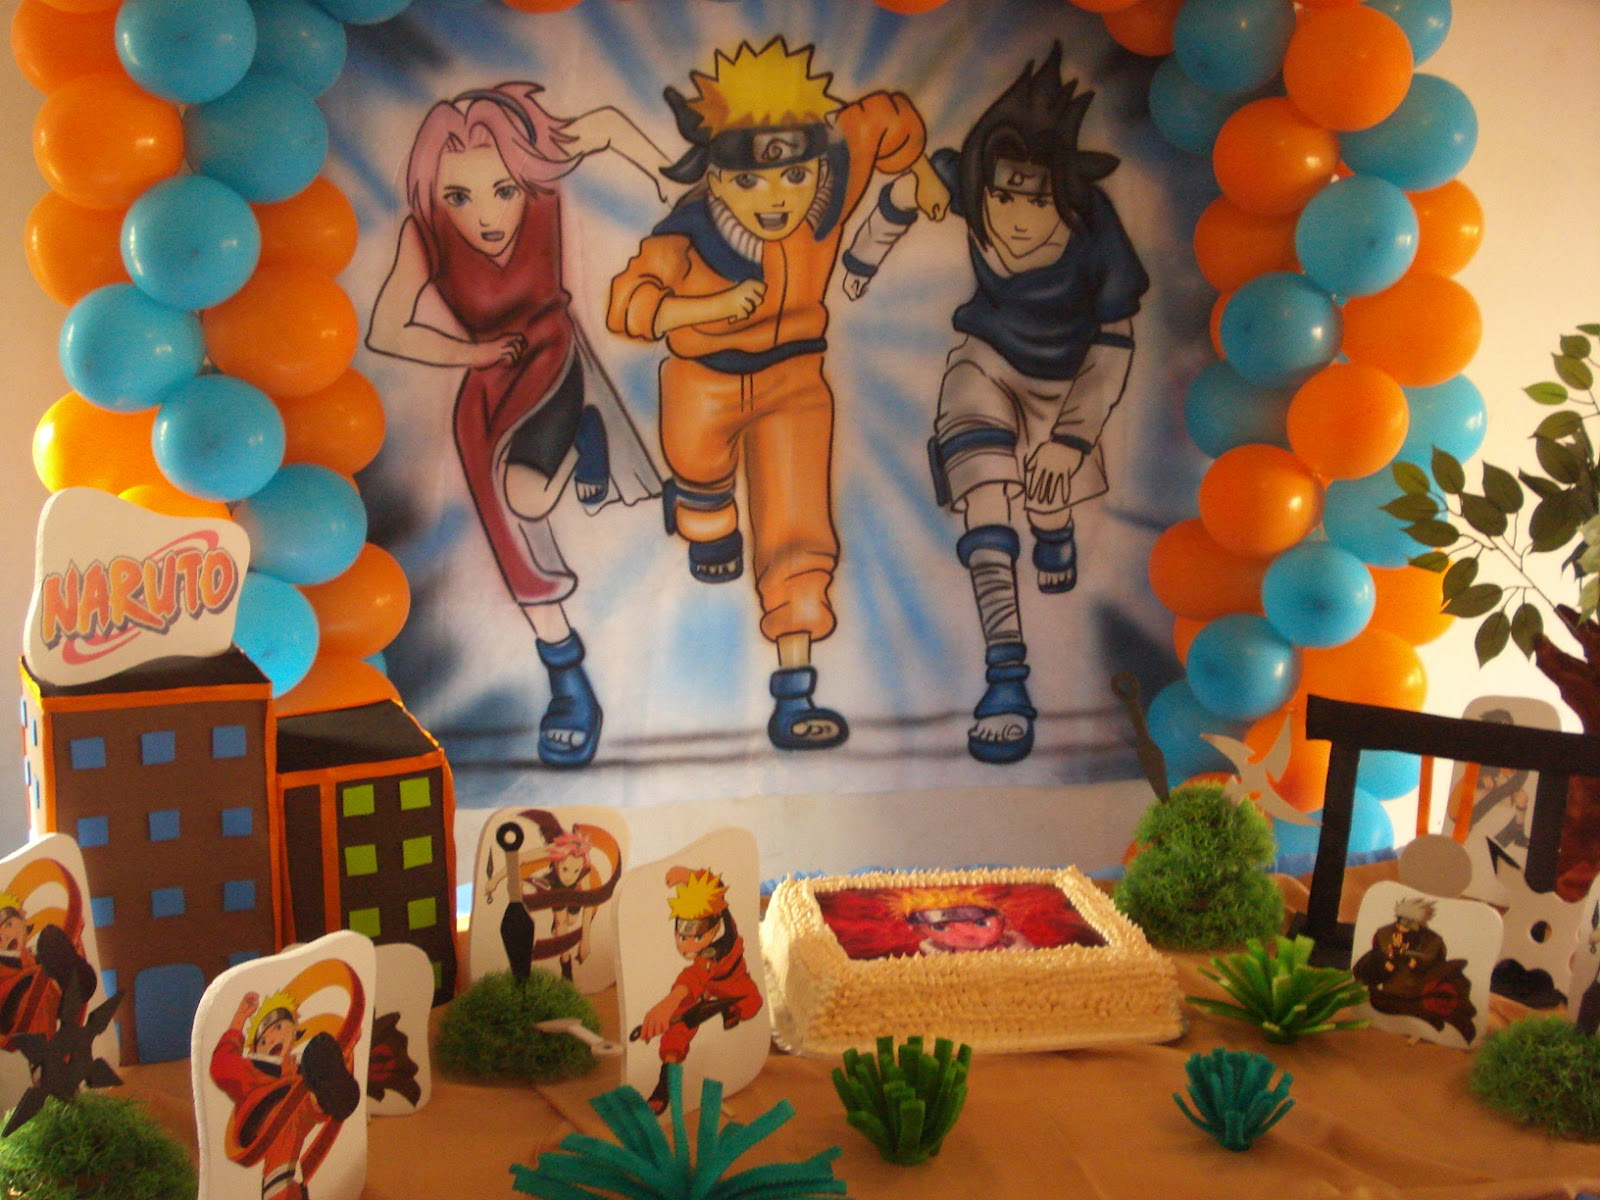 decoracao festa naruto : decoracao festa naruto:Enviar por e-mail BlogThis! Compartilhar no Twitter Compartilhar no